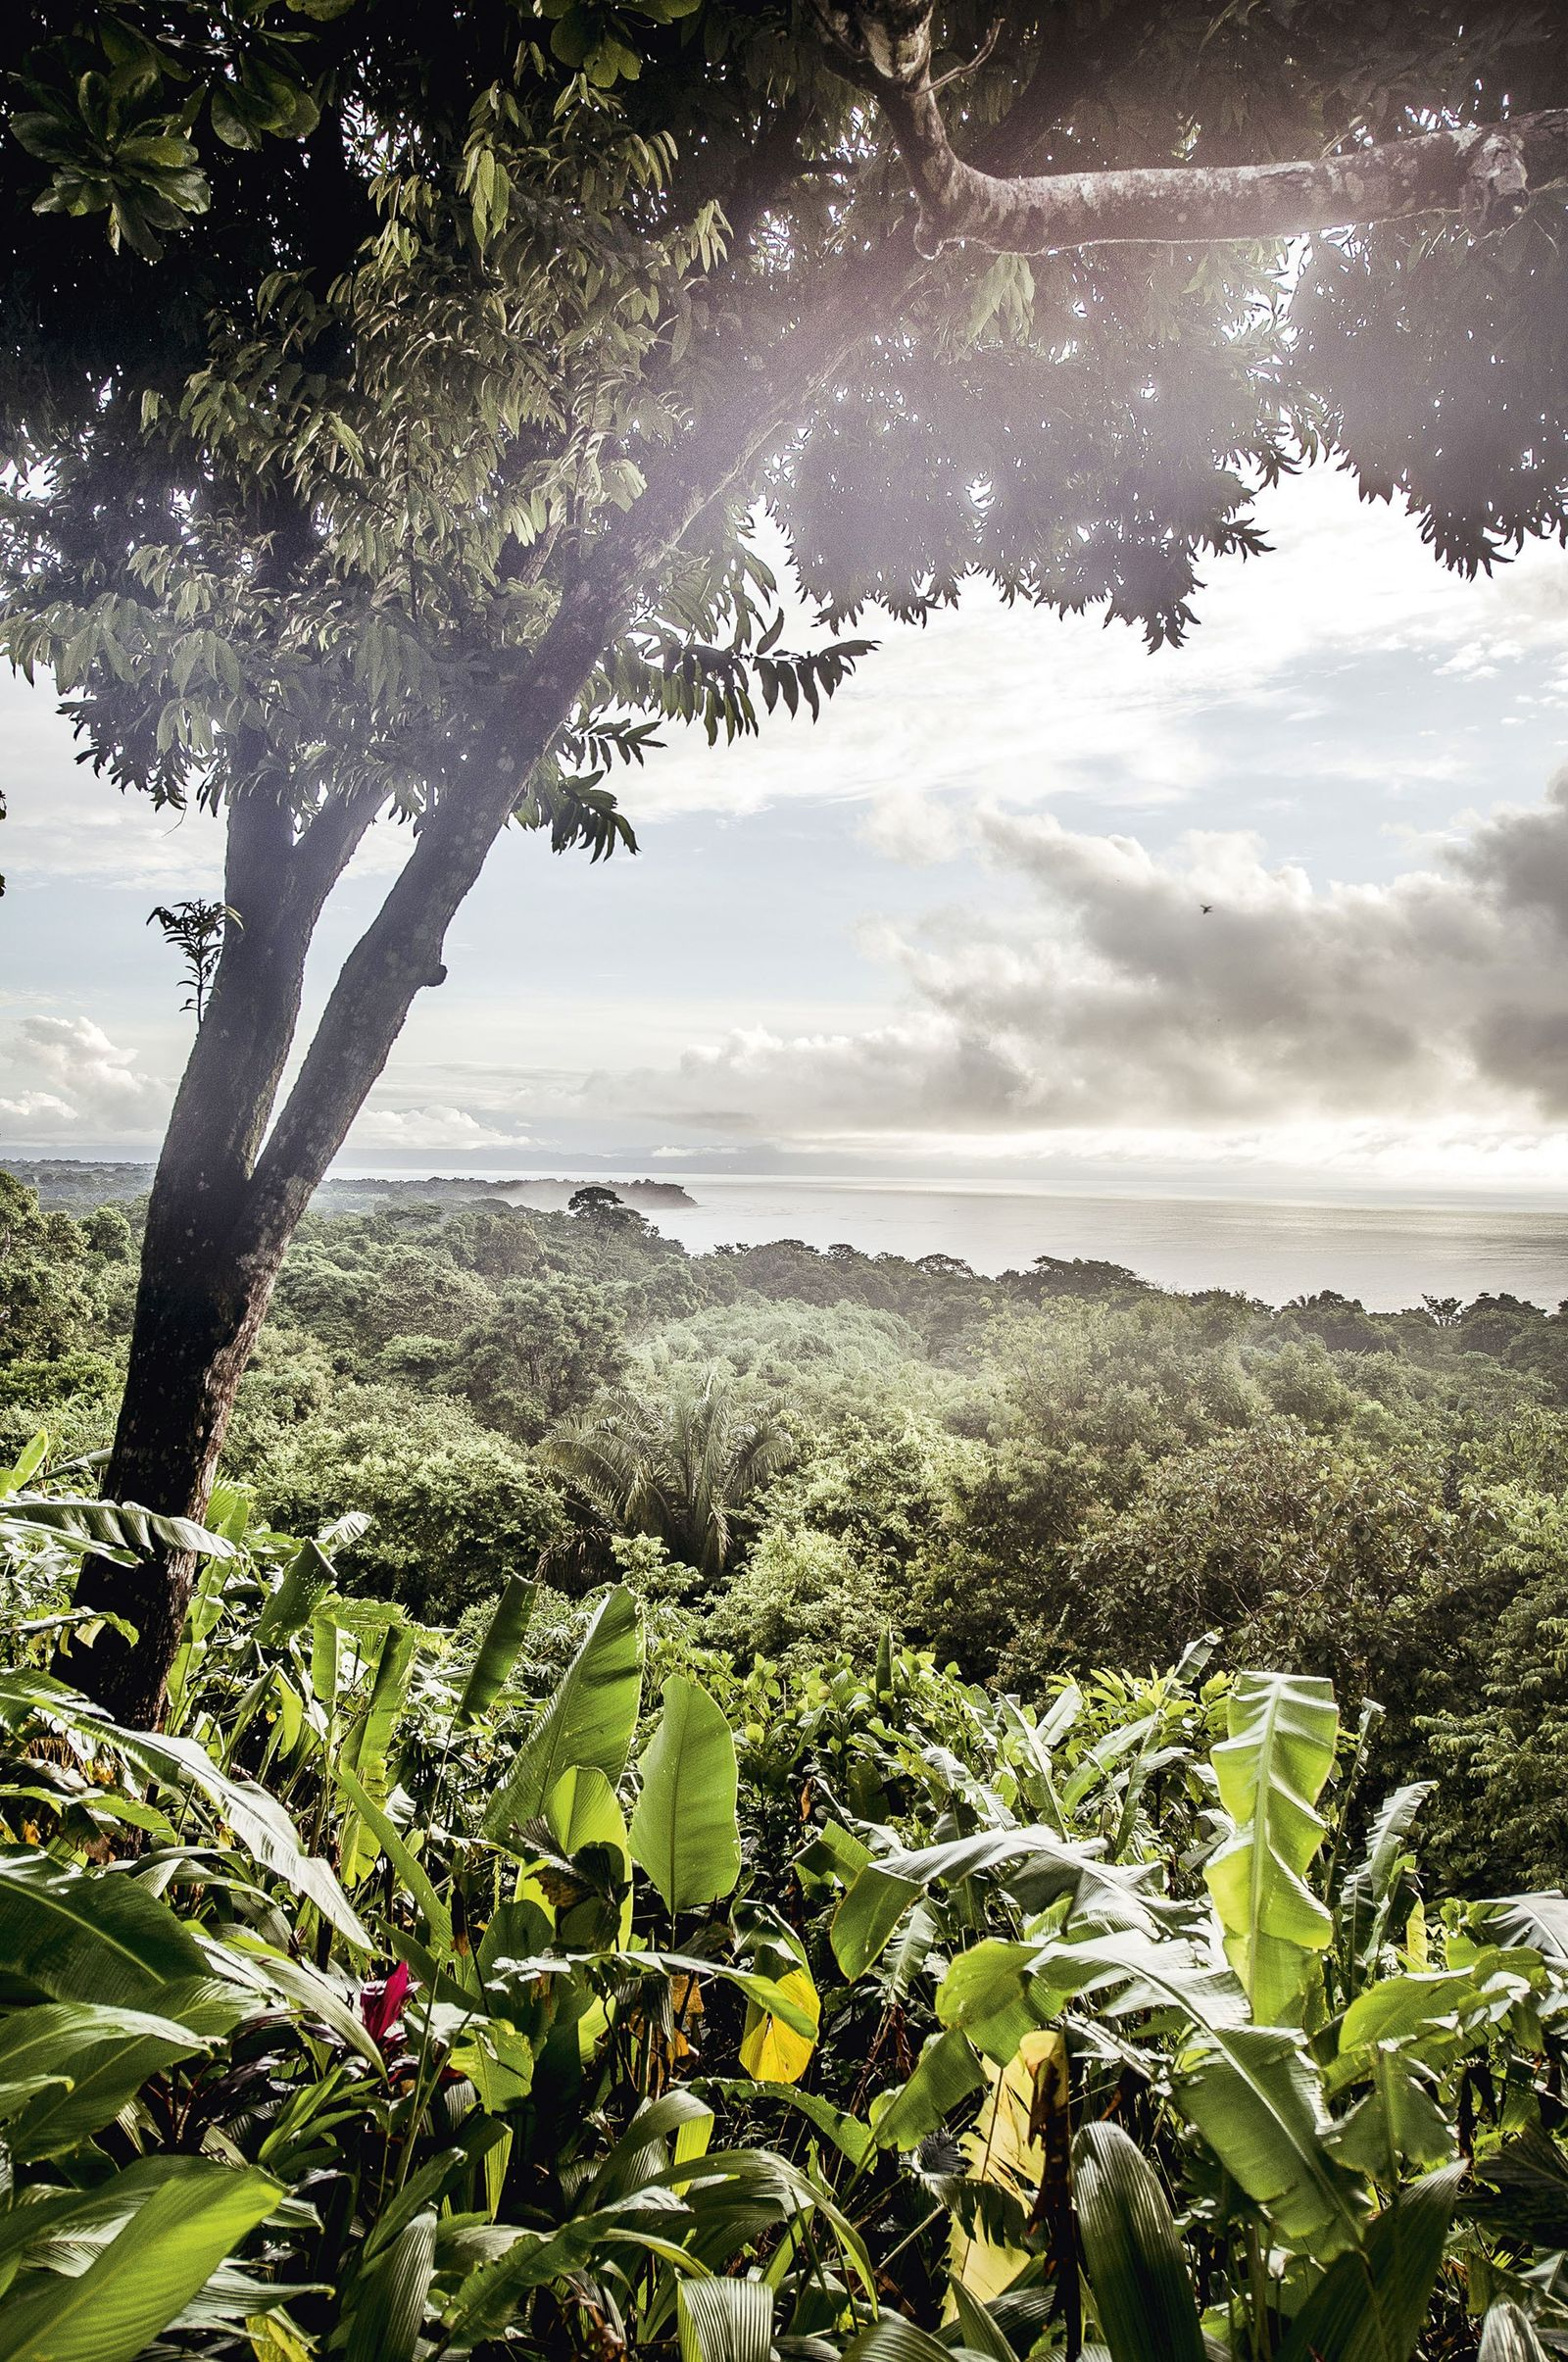 In pictures: wild corners of Costa Rica